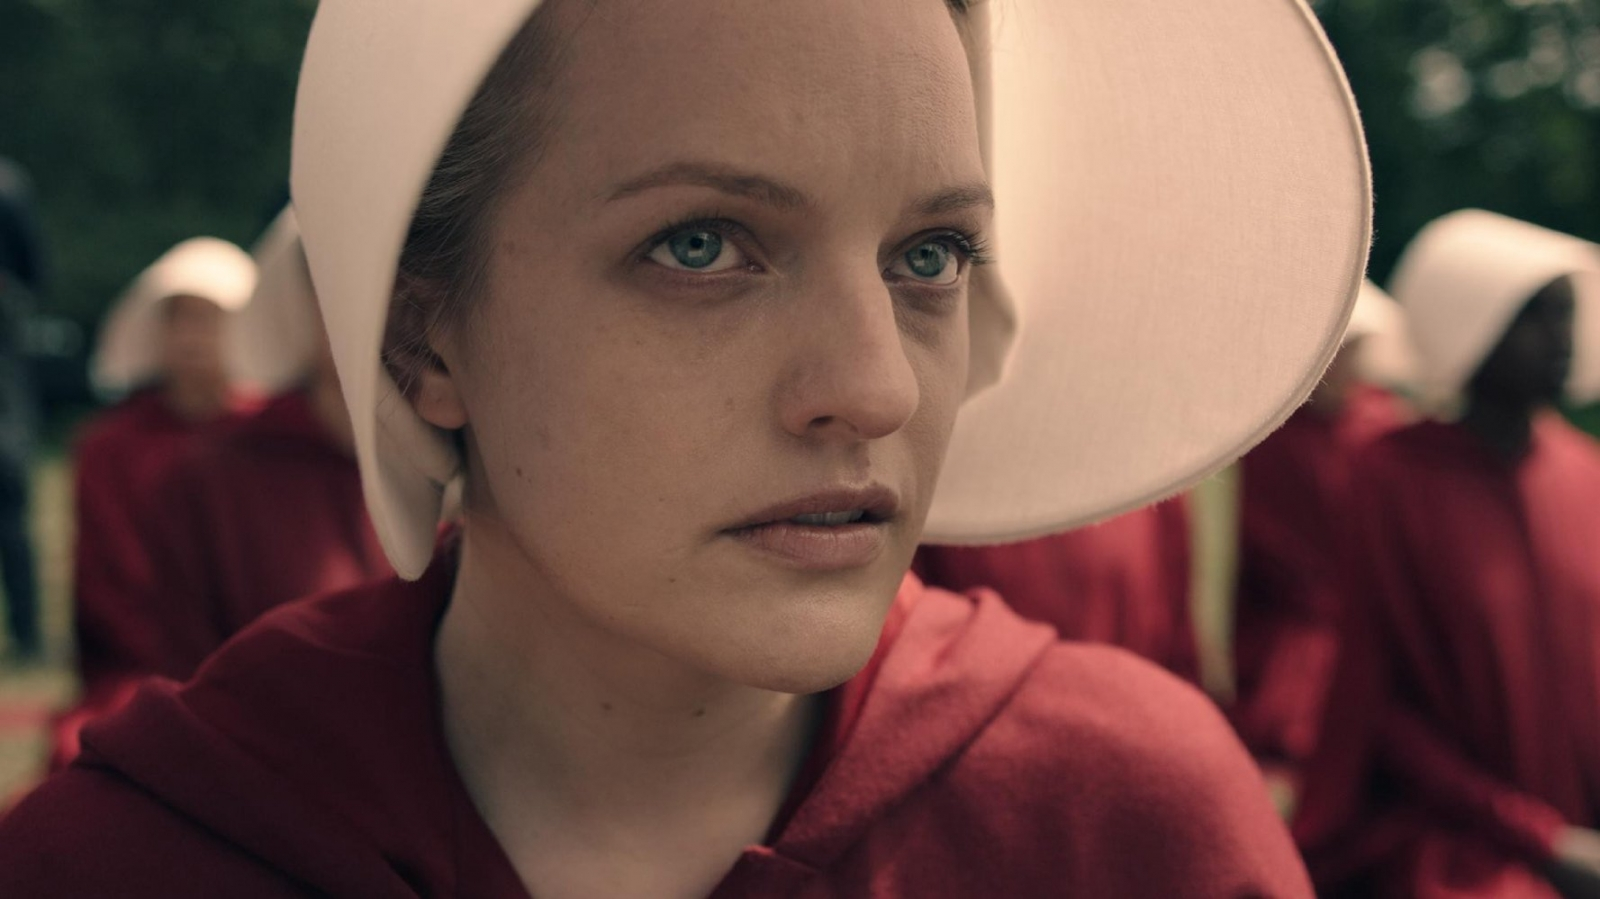 The Handmaid's Tale is coming to Channel 4